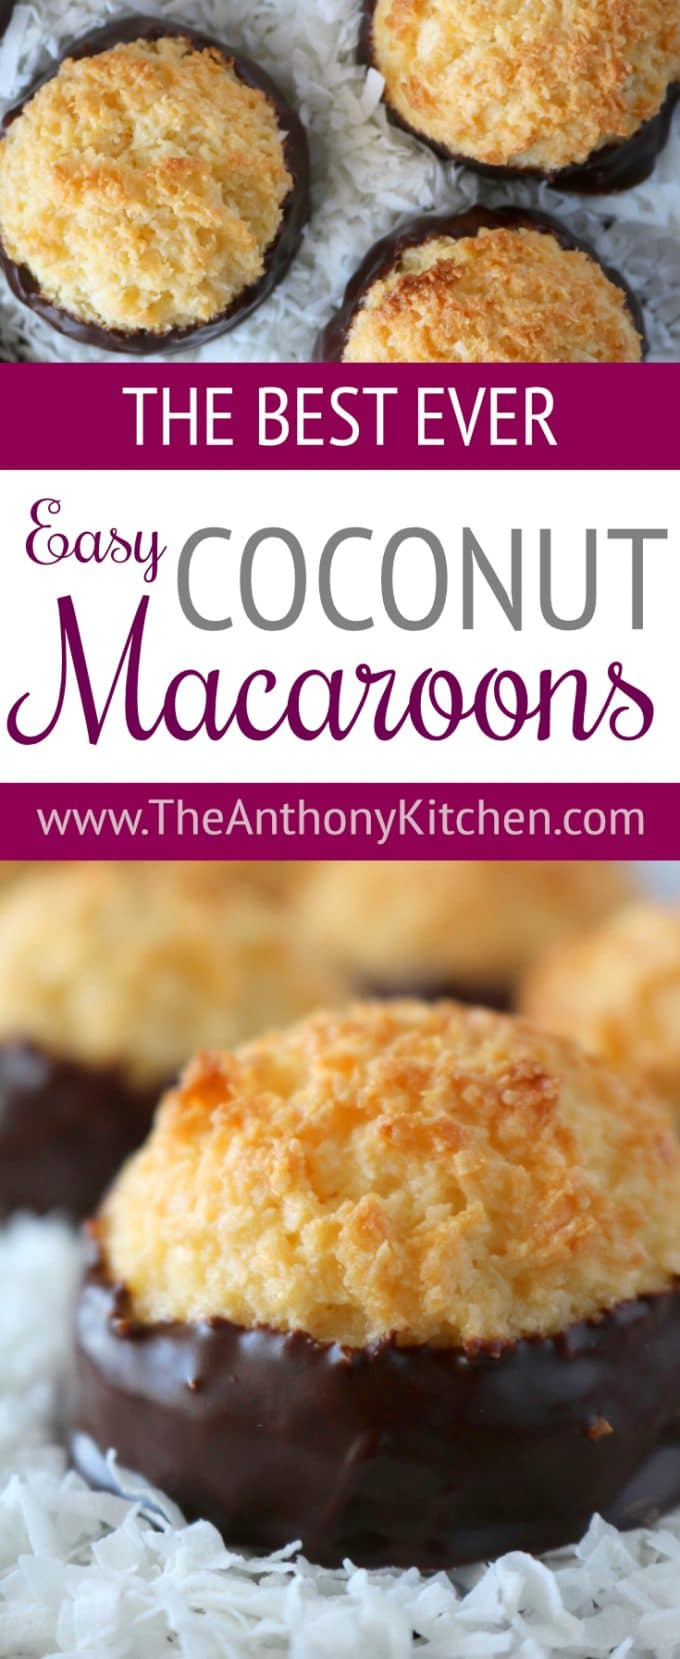 Easy Coconut Macaroon Recipe made with condensed milk